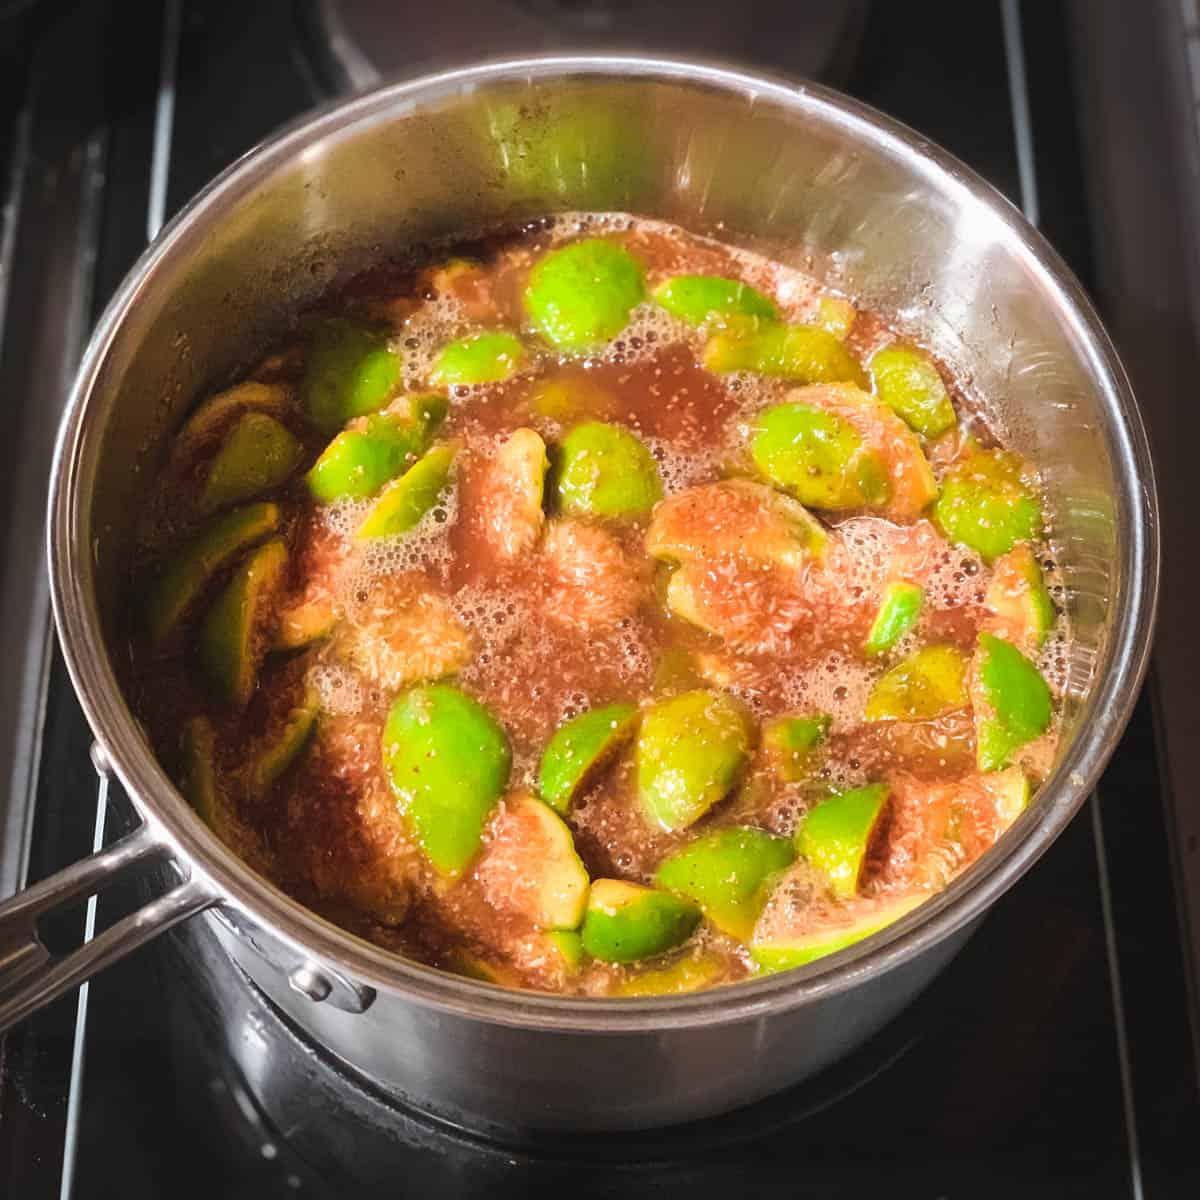 figs cooking in a pot on the stove